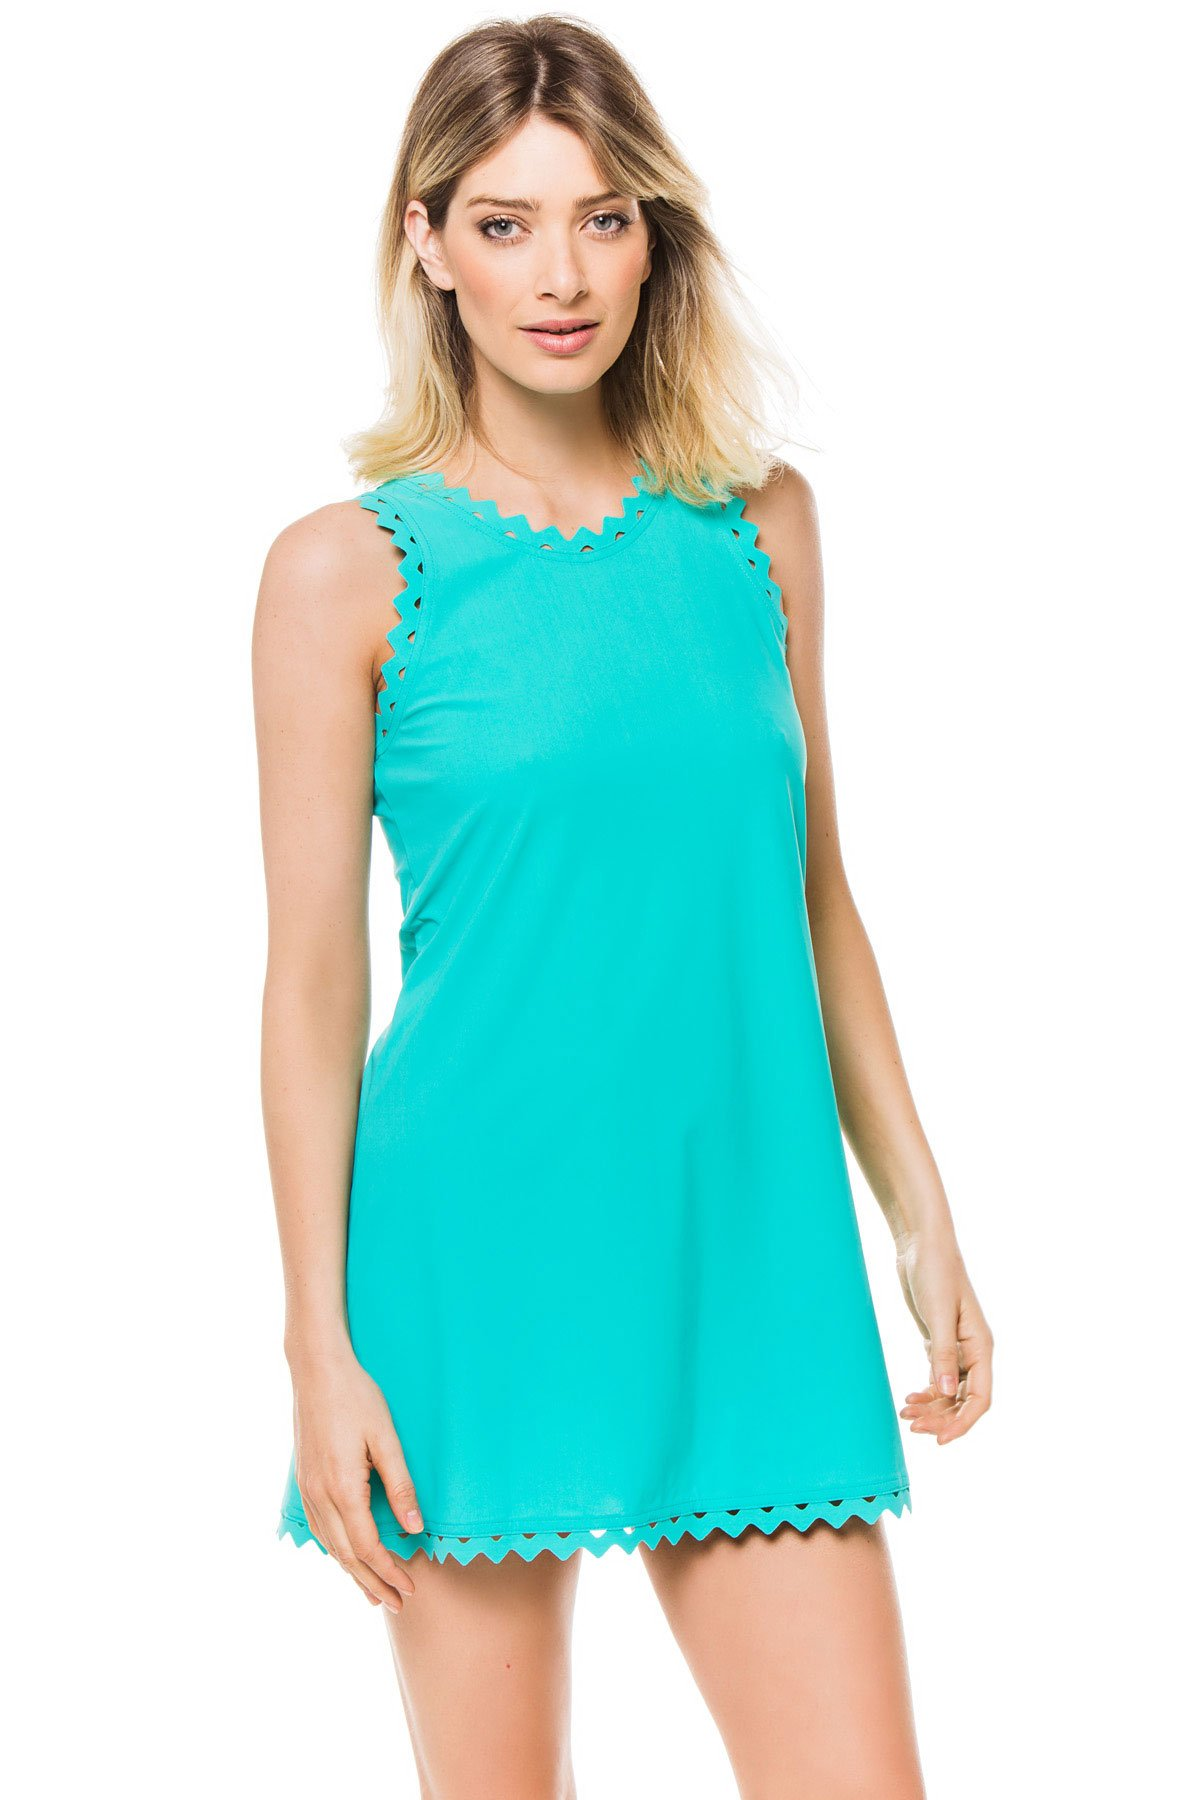 Karla Colletto Women's Rick Rack Tank Dress Swim Cover Up Aqua S by Karla Colletto